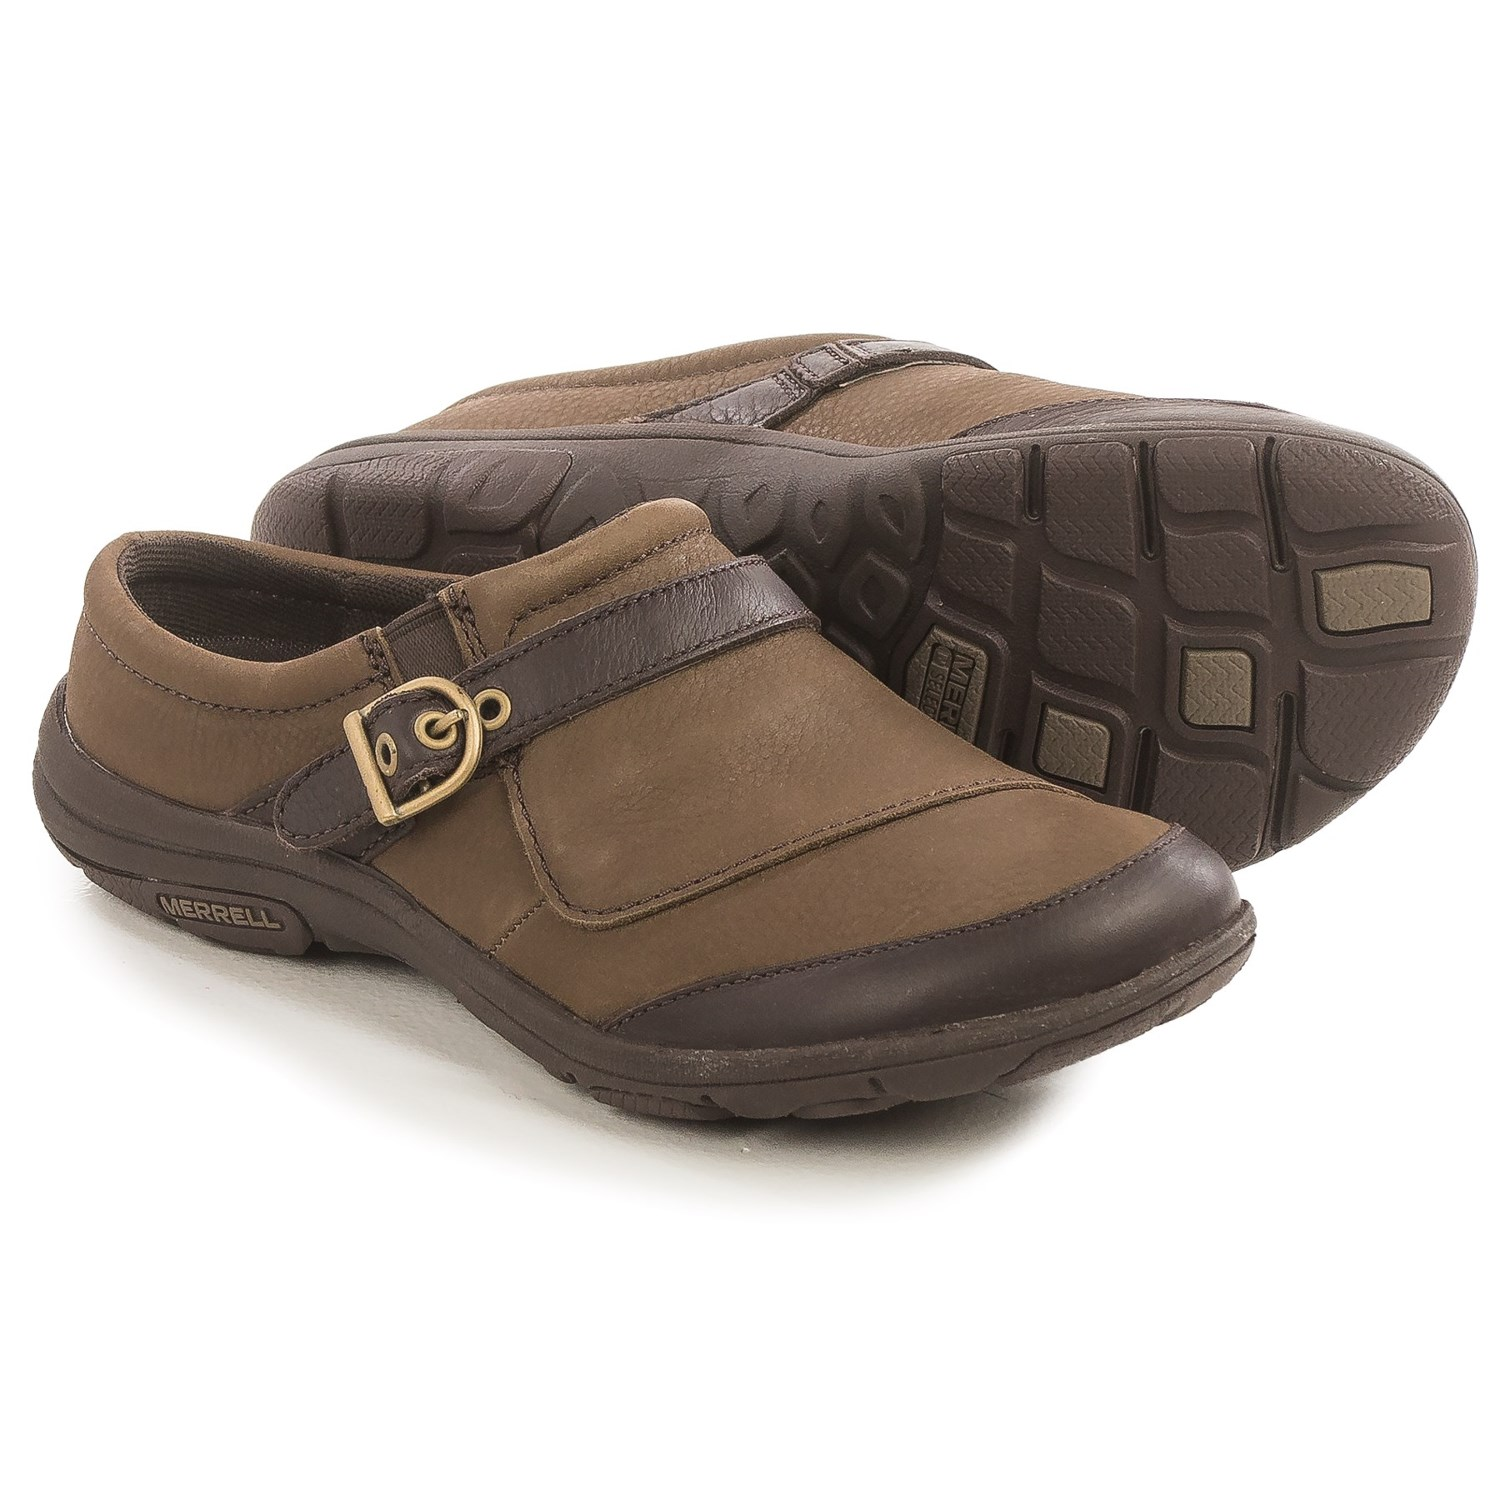 Merrell Shoes Brown Leather